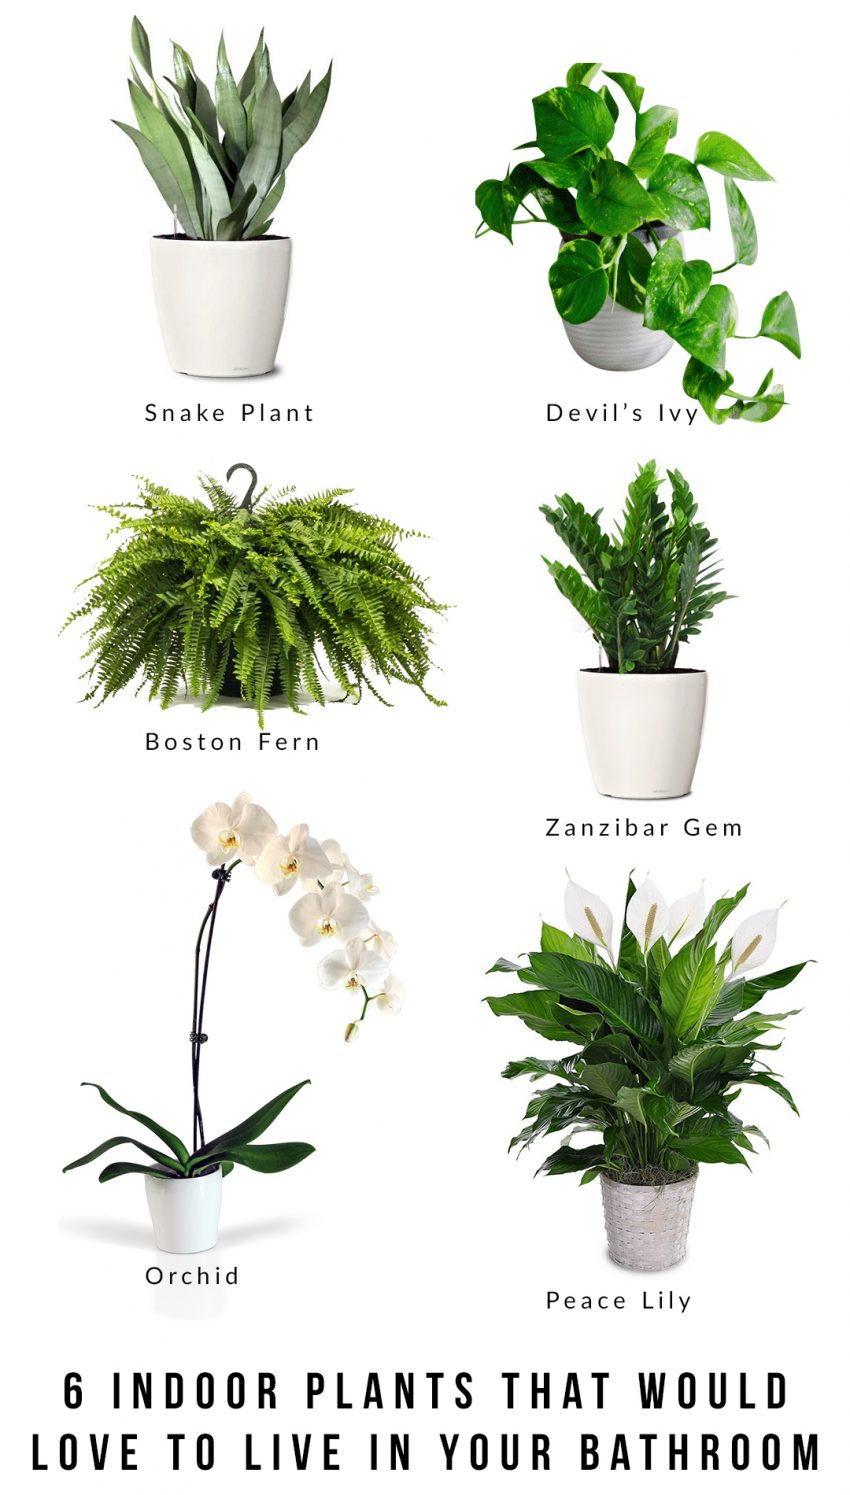 20 indoor plants that would love to live in your bathroom